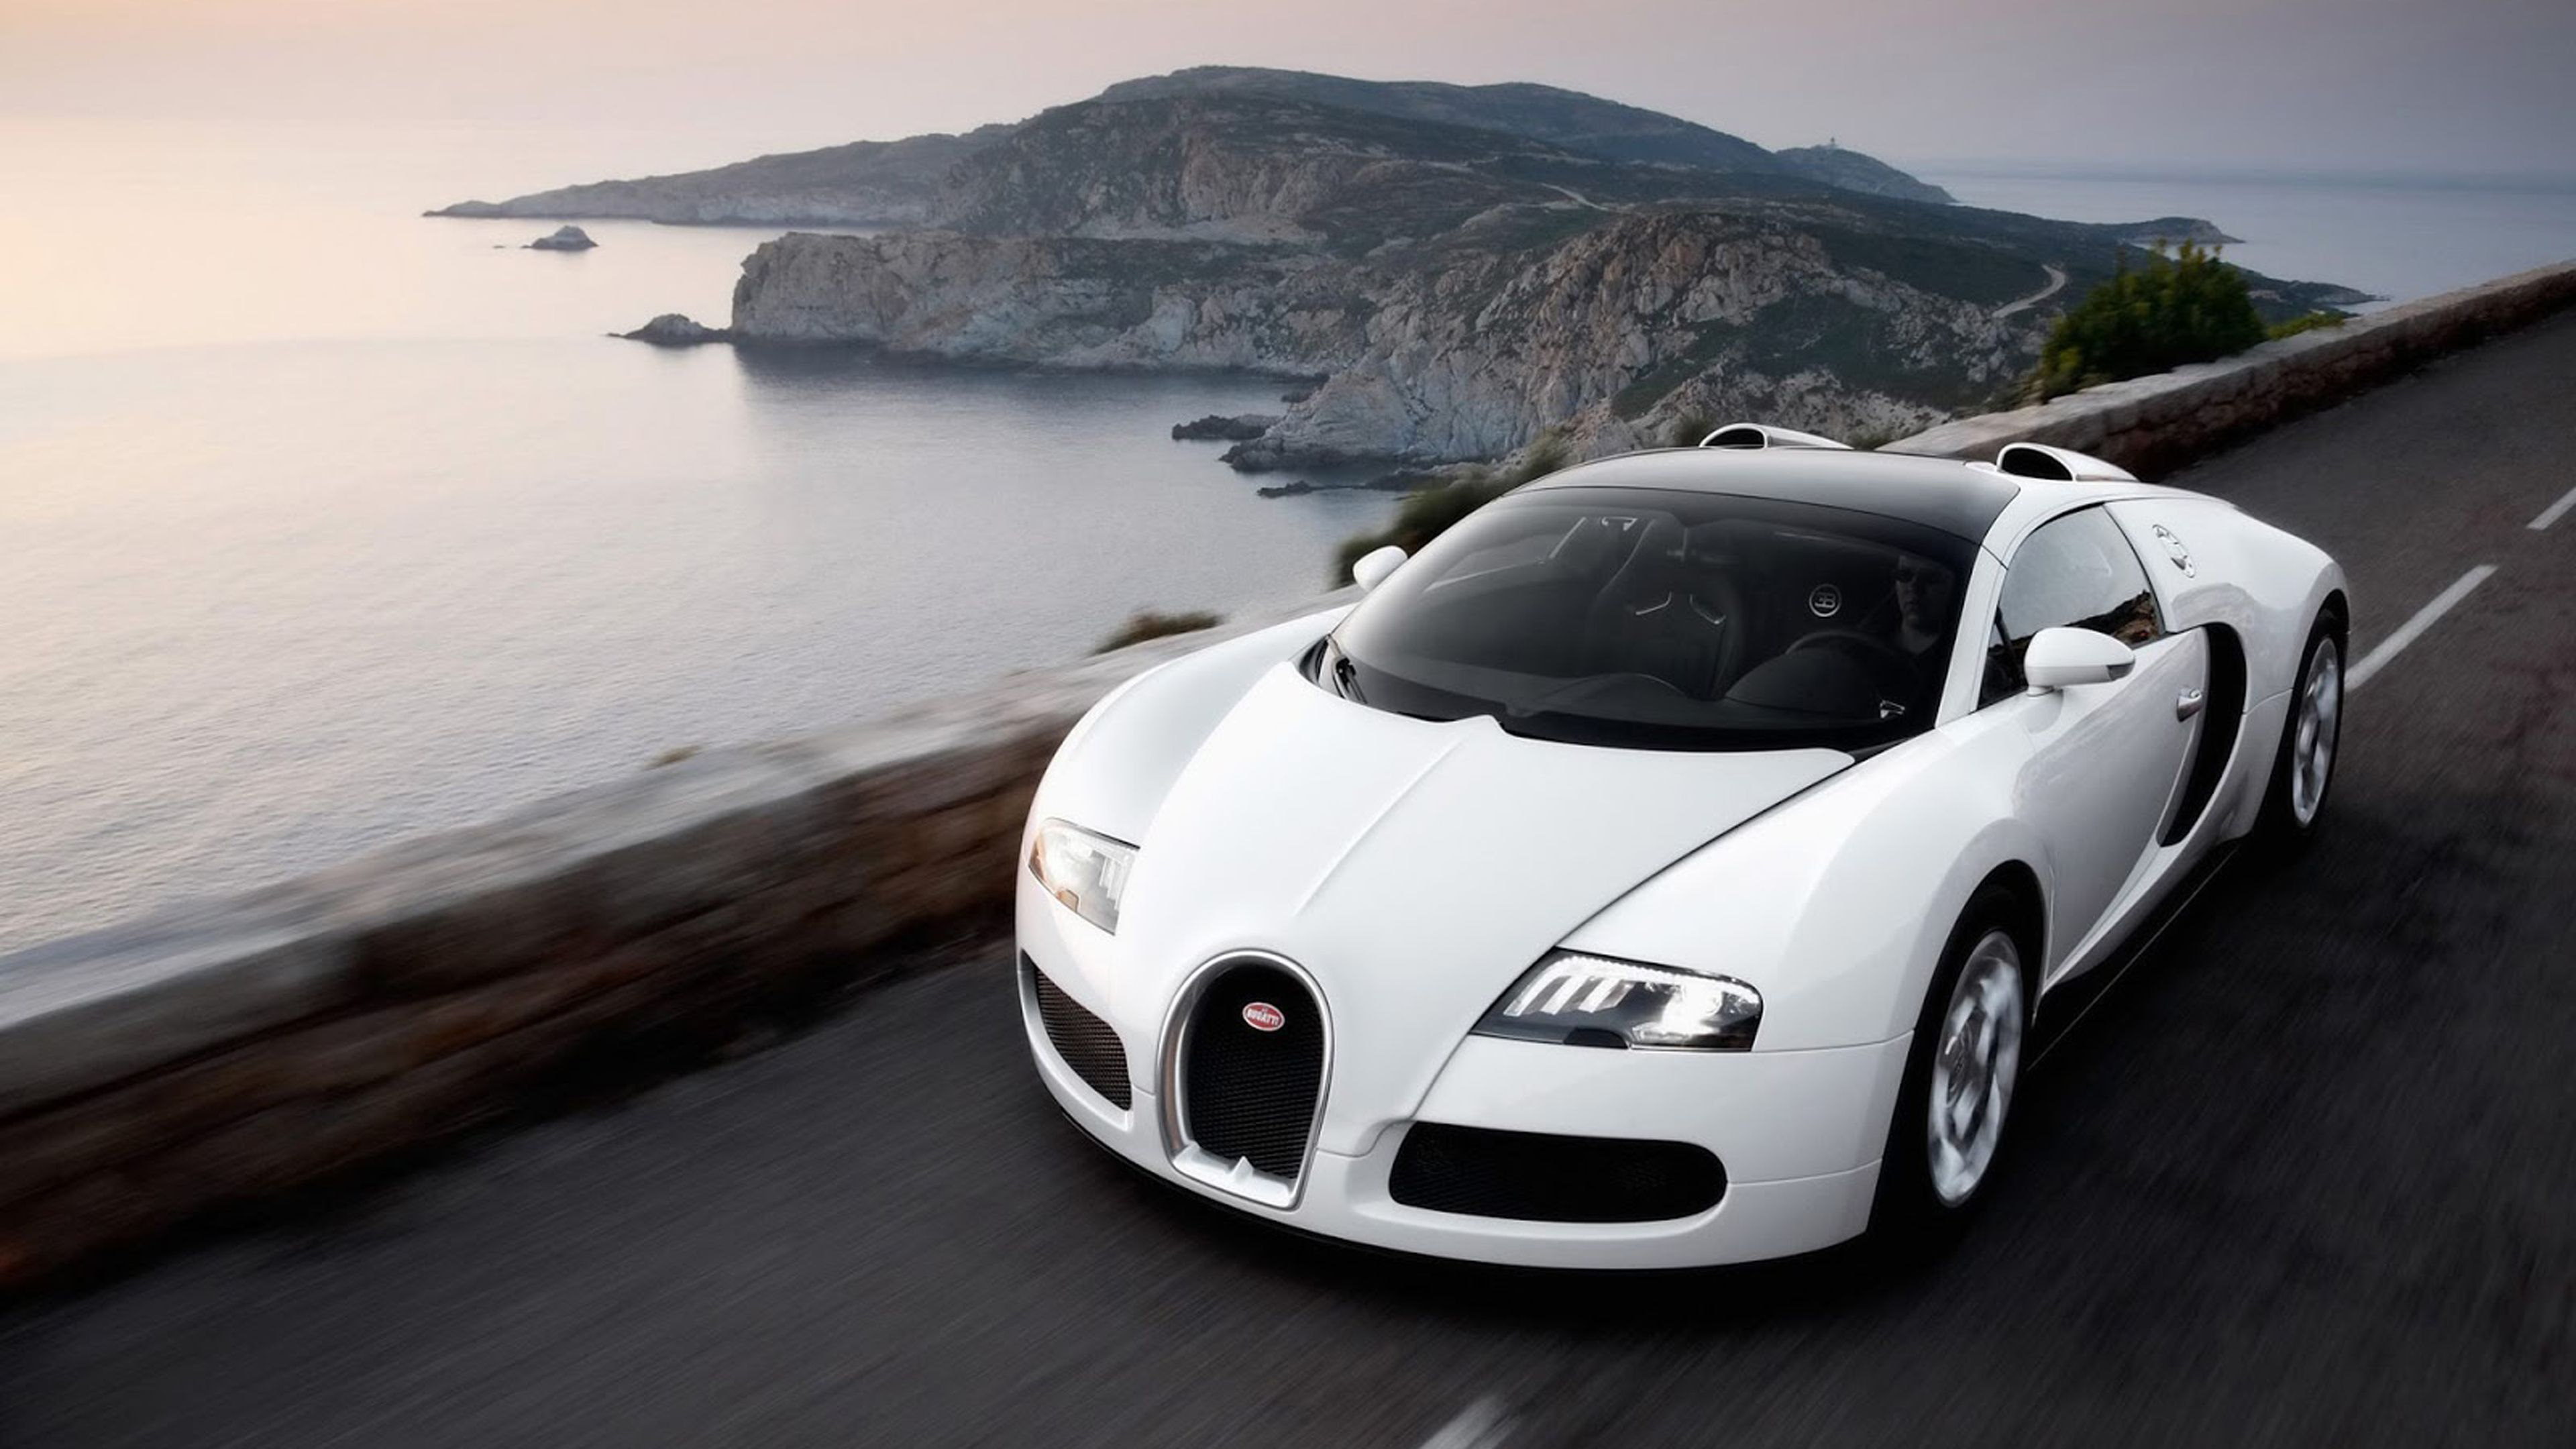 43b301966c8c0ccff4ad2f444bdcc826 Exciting Bugatti Veyron Cost for Oil Change Cars Trend